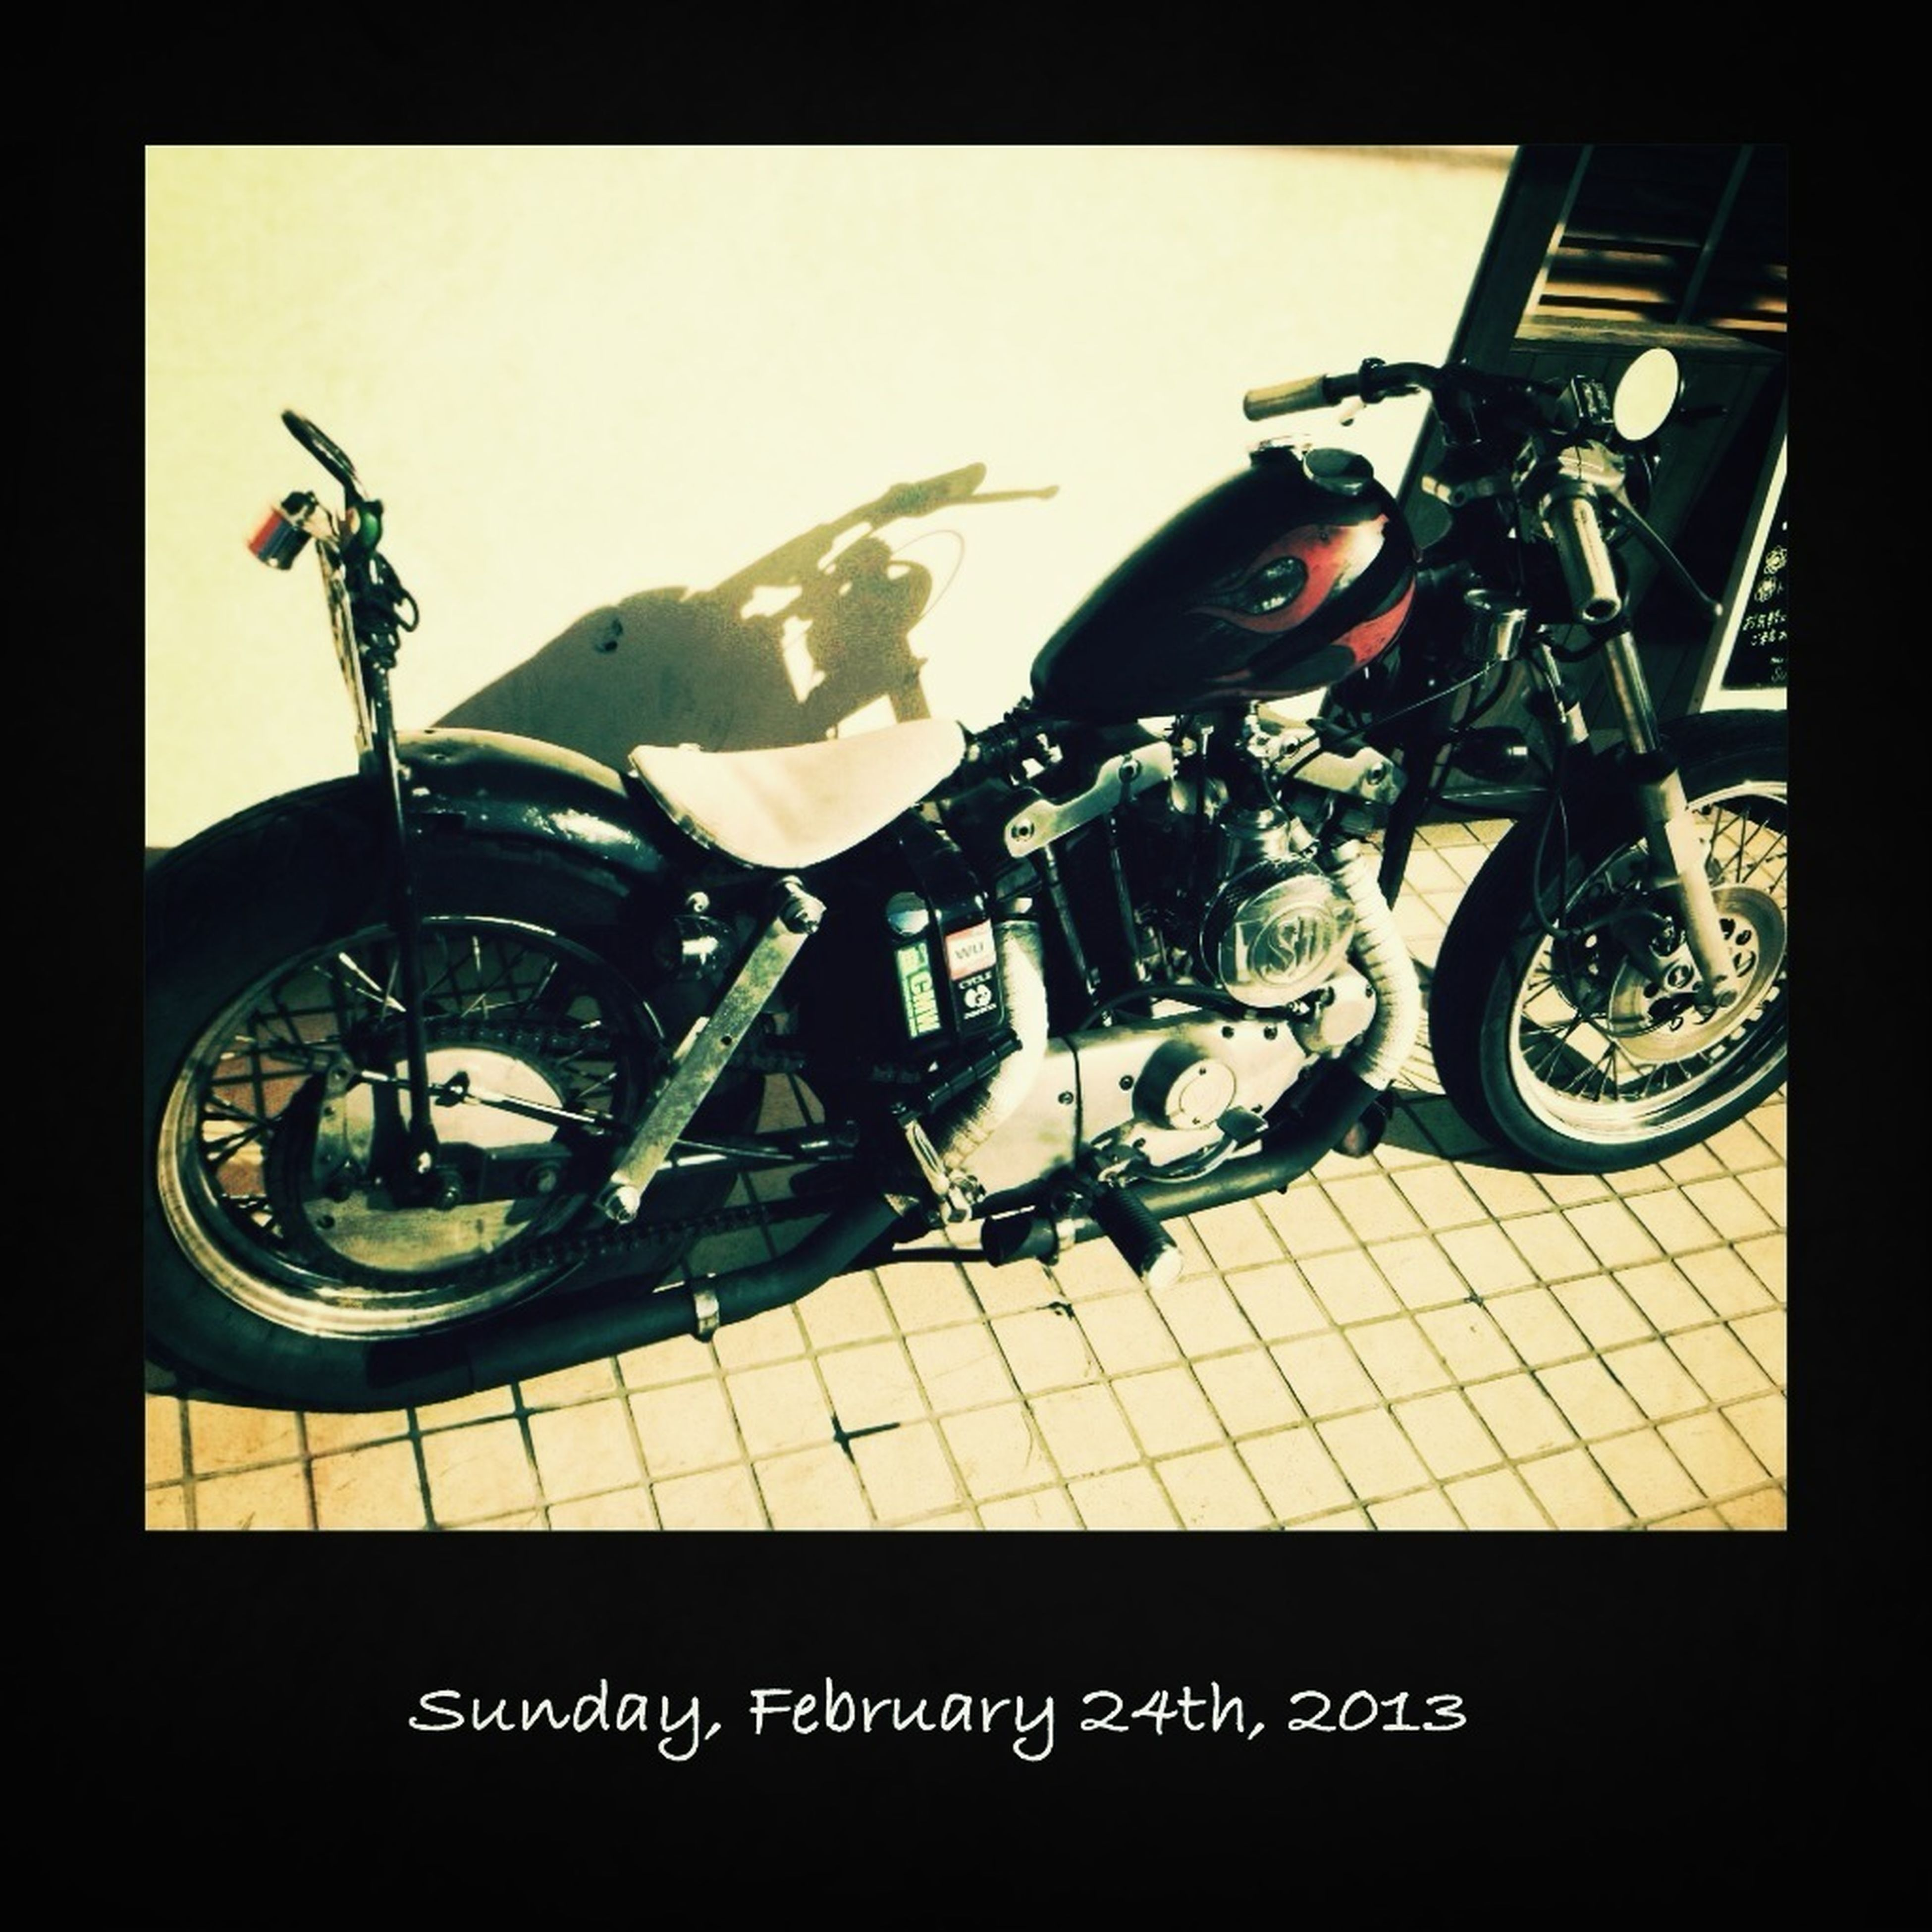 transfer print, bicycle, transportation, auto post production filter, land vehicle, mode of transport, stationary, parked, parking, high angle view, motorcycle, indoors, car, no people, retro styled, day, street, parking lot, shadow, sunlight